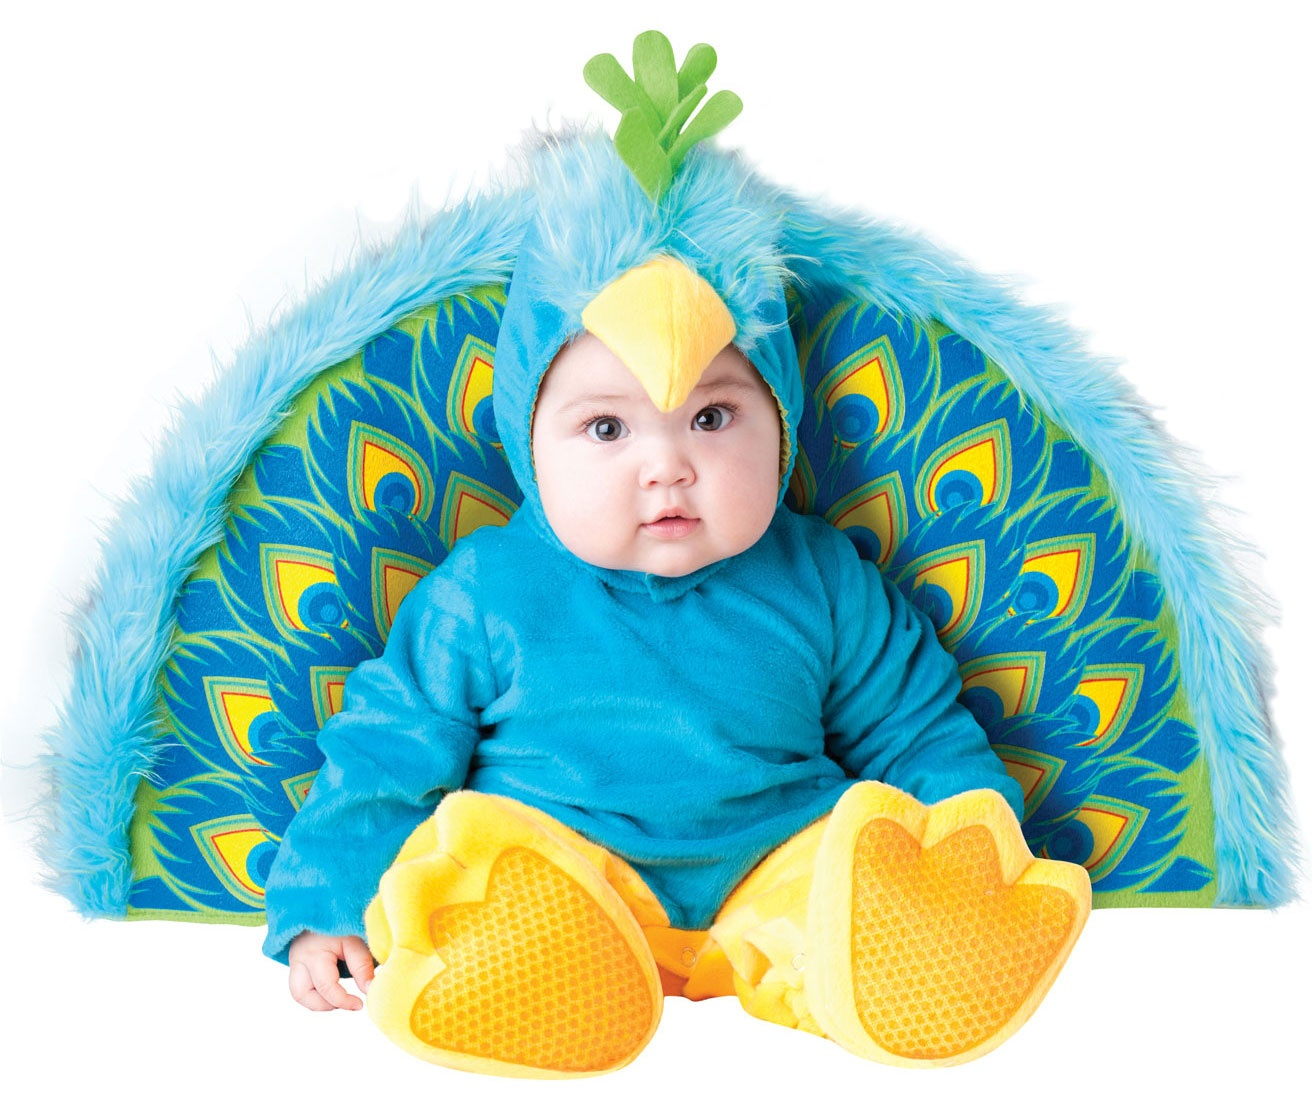 furry blue precious peacock baby costume mr costumes. Black Bedroom Furniture Sets. Home Design Ideas